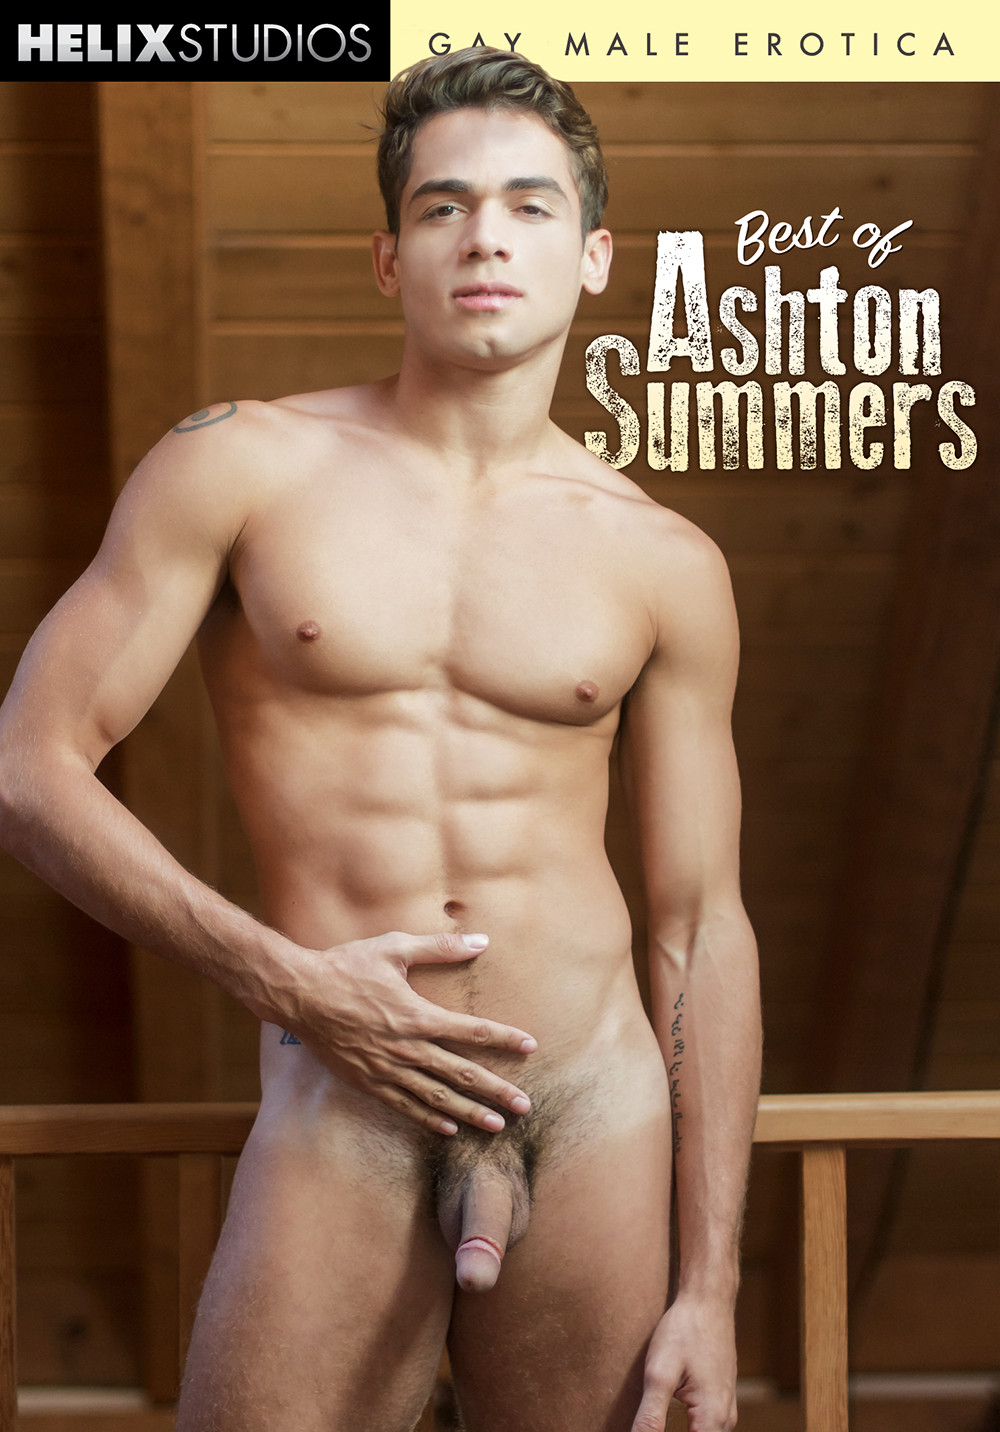 Best of Ashton Summers